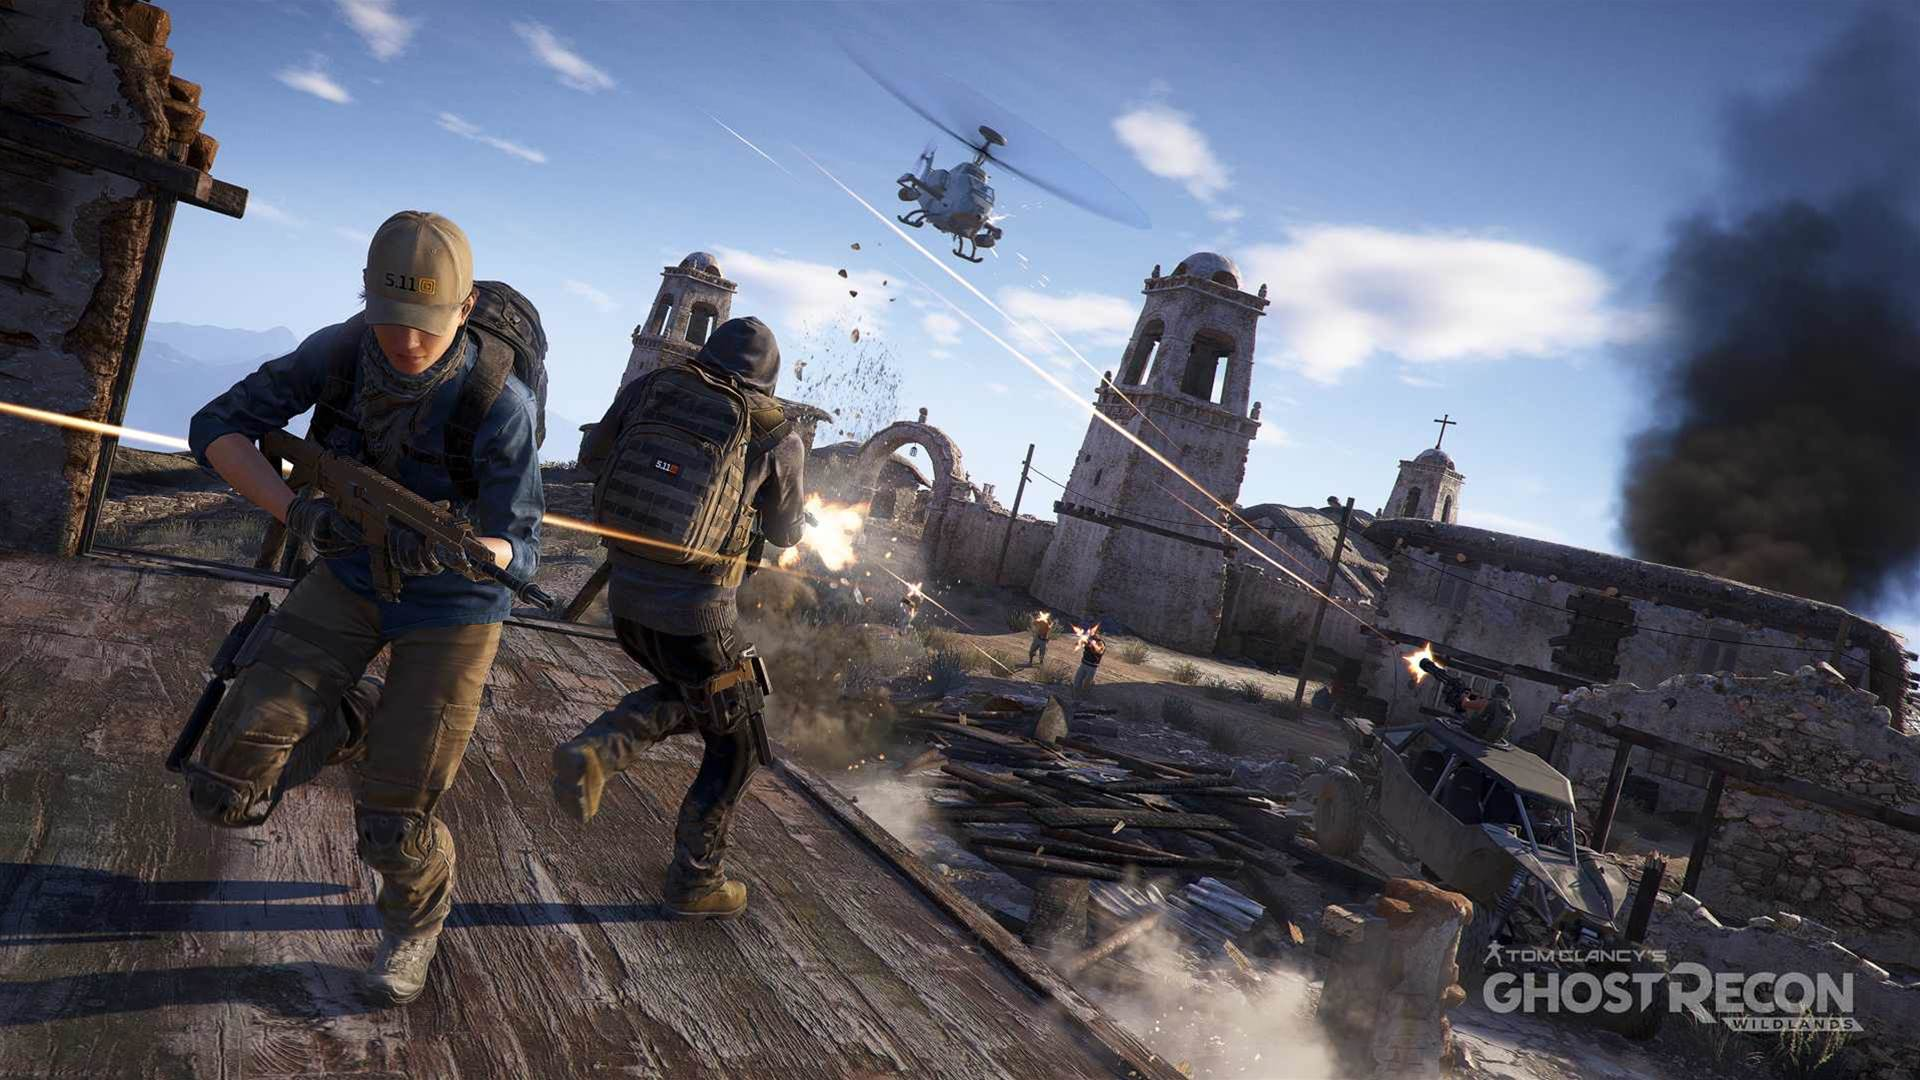 Locked and loaded Ghost Recon Wildlands imagery